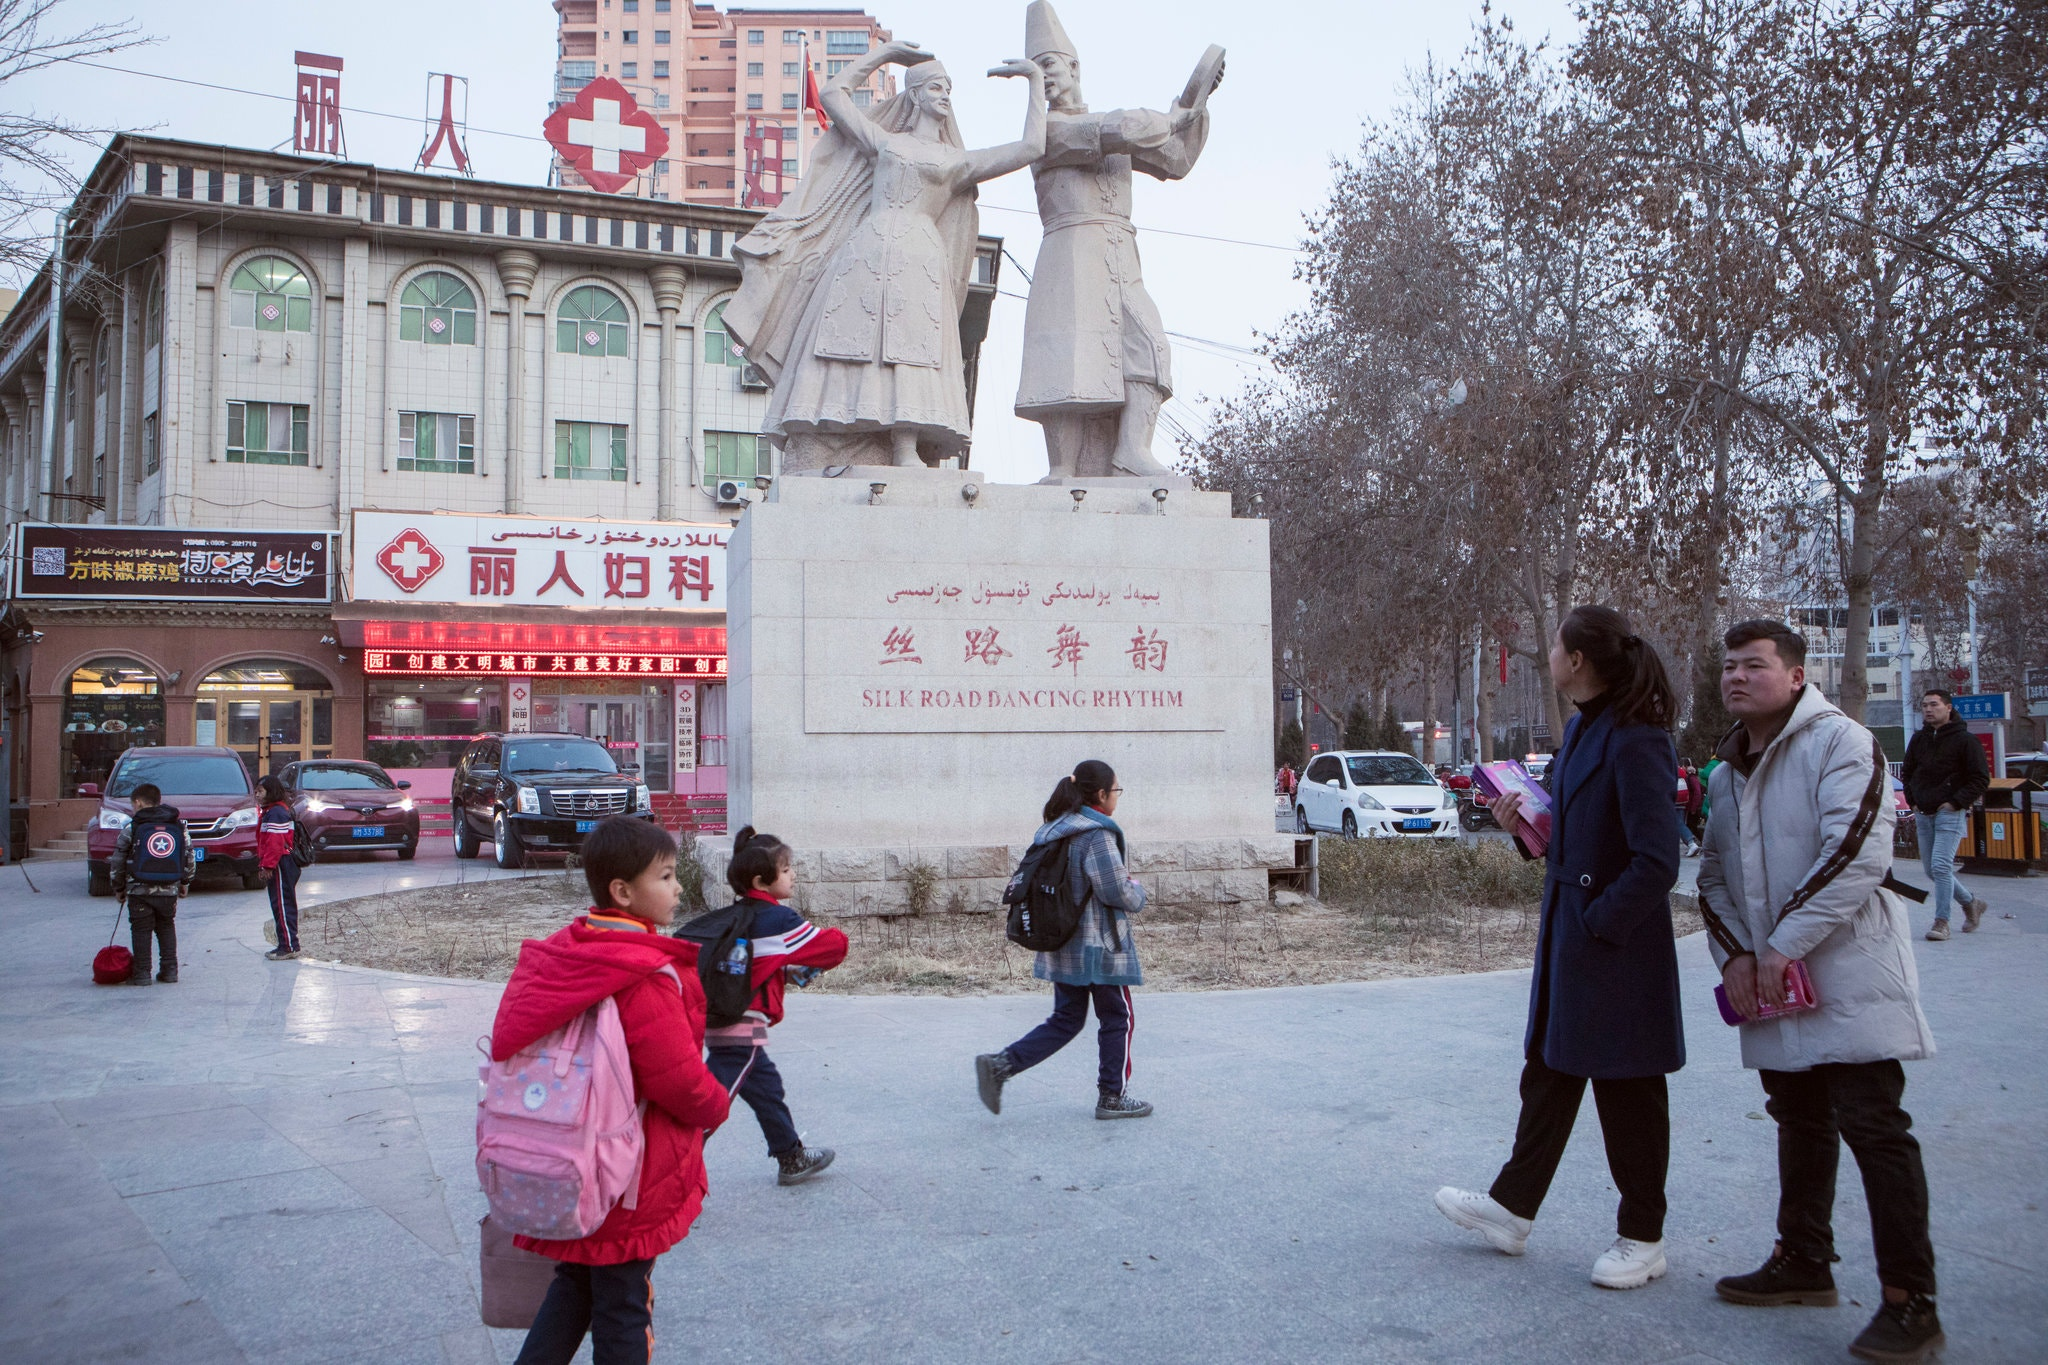 In China's Crackdown on Muslims, Children Have Not Been Spared